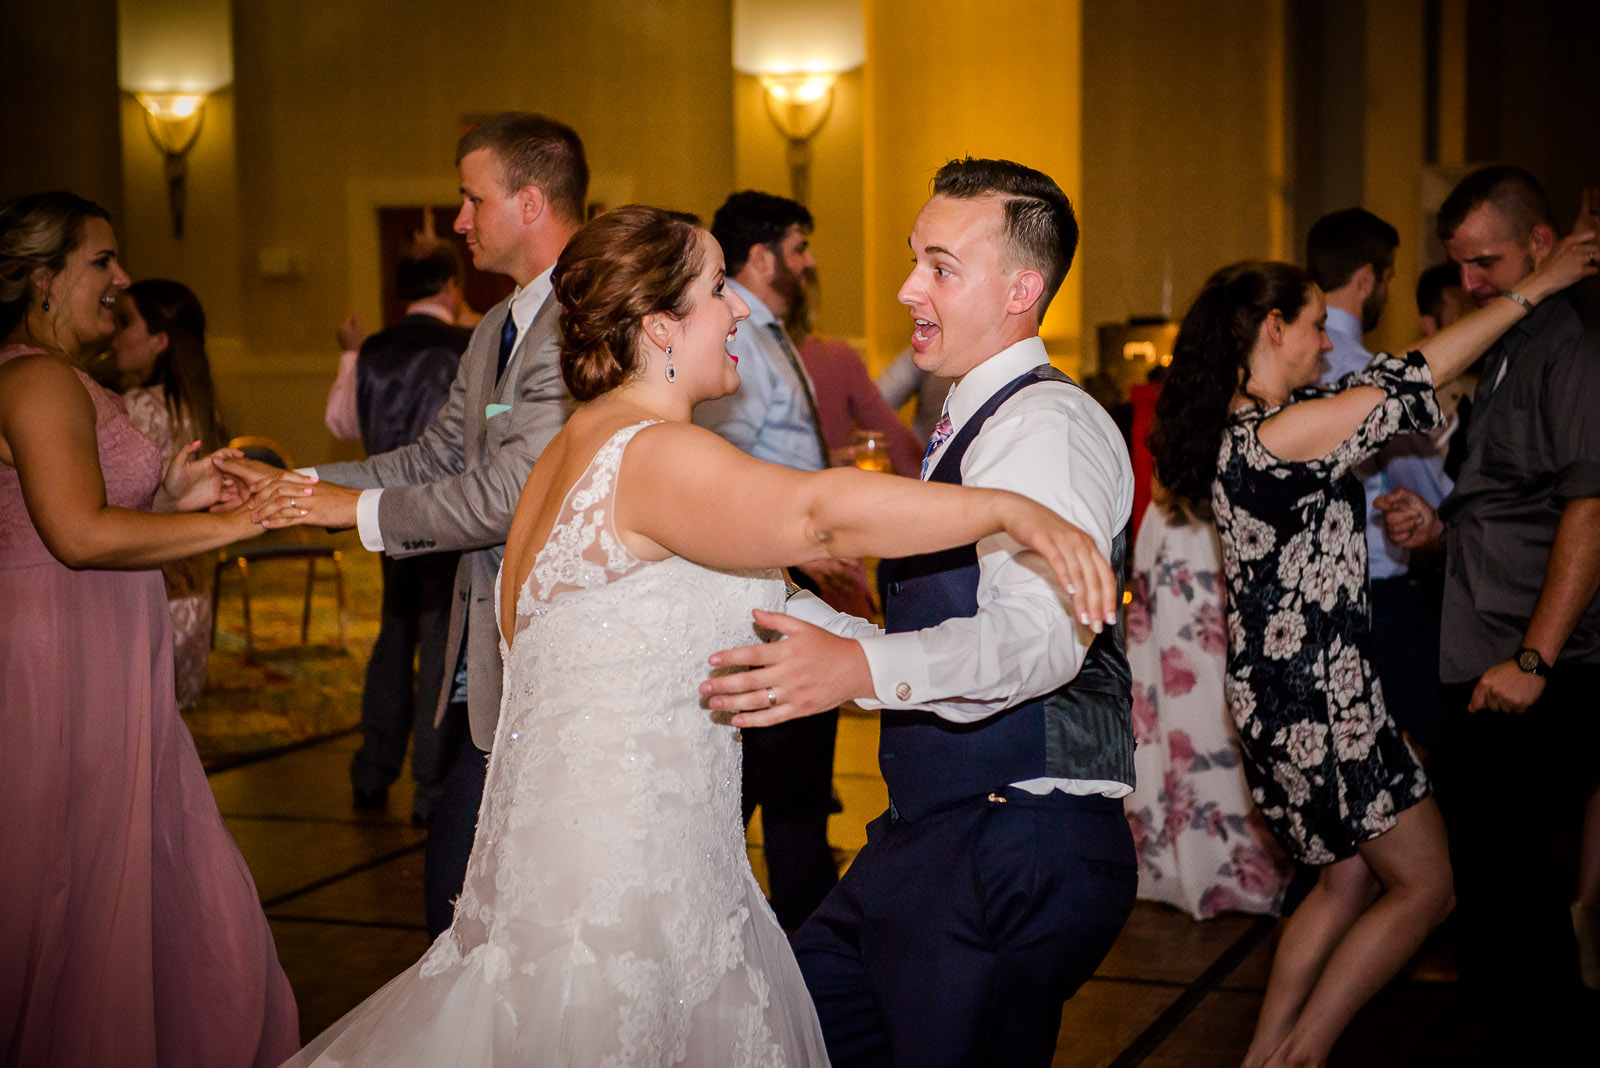 Eric_and_Christy_Photography_Blog_Wedding_Paige_Eric-72